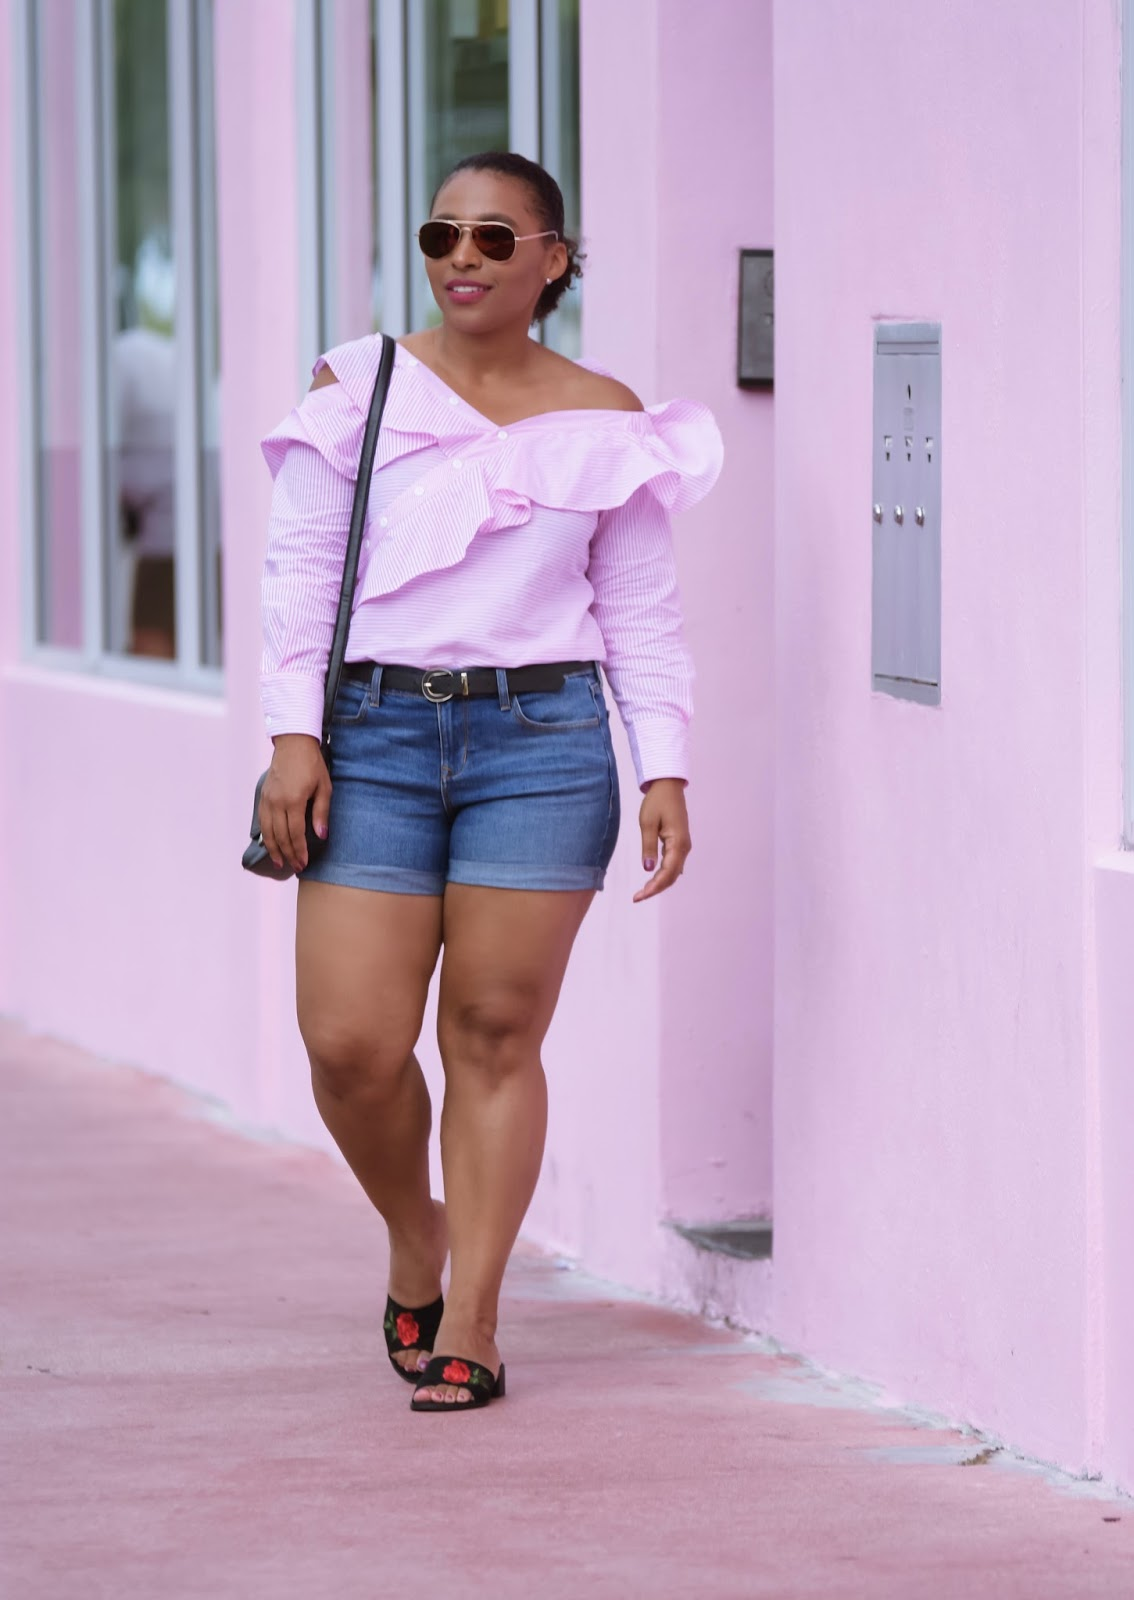 How To Relax After A Long Week, pink ruffle top, cold shoulder, pink house, miami, south beach, summer outfits, cutoff, sheinside tops, shein,